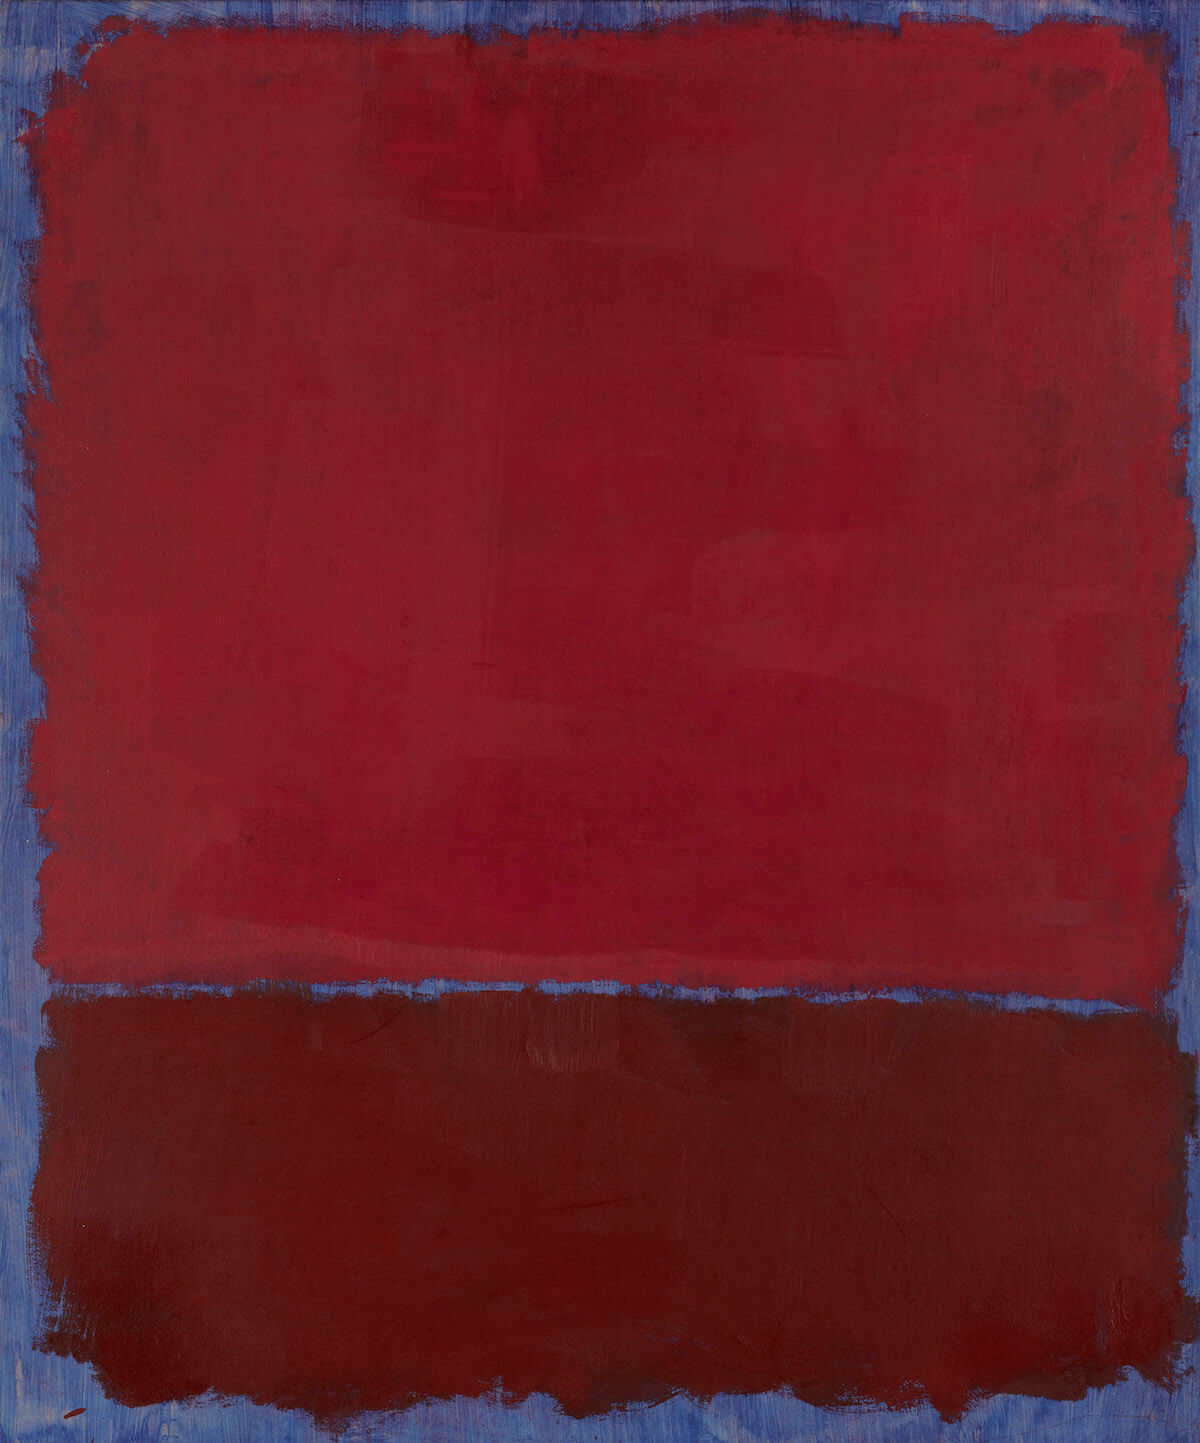 Mark Rothko, Untitled (Red and Burgundy Over Blue), 1969, oil on paper mounted on board. Est. $9 million–$12 million. Courtesy Sotheby's.